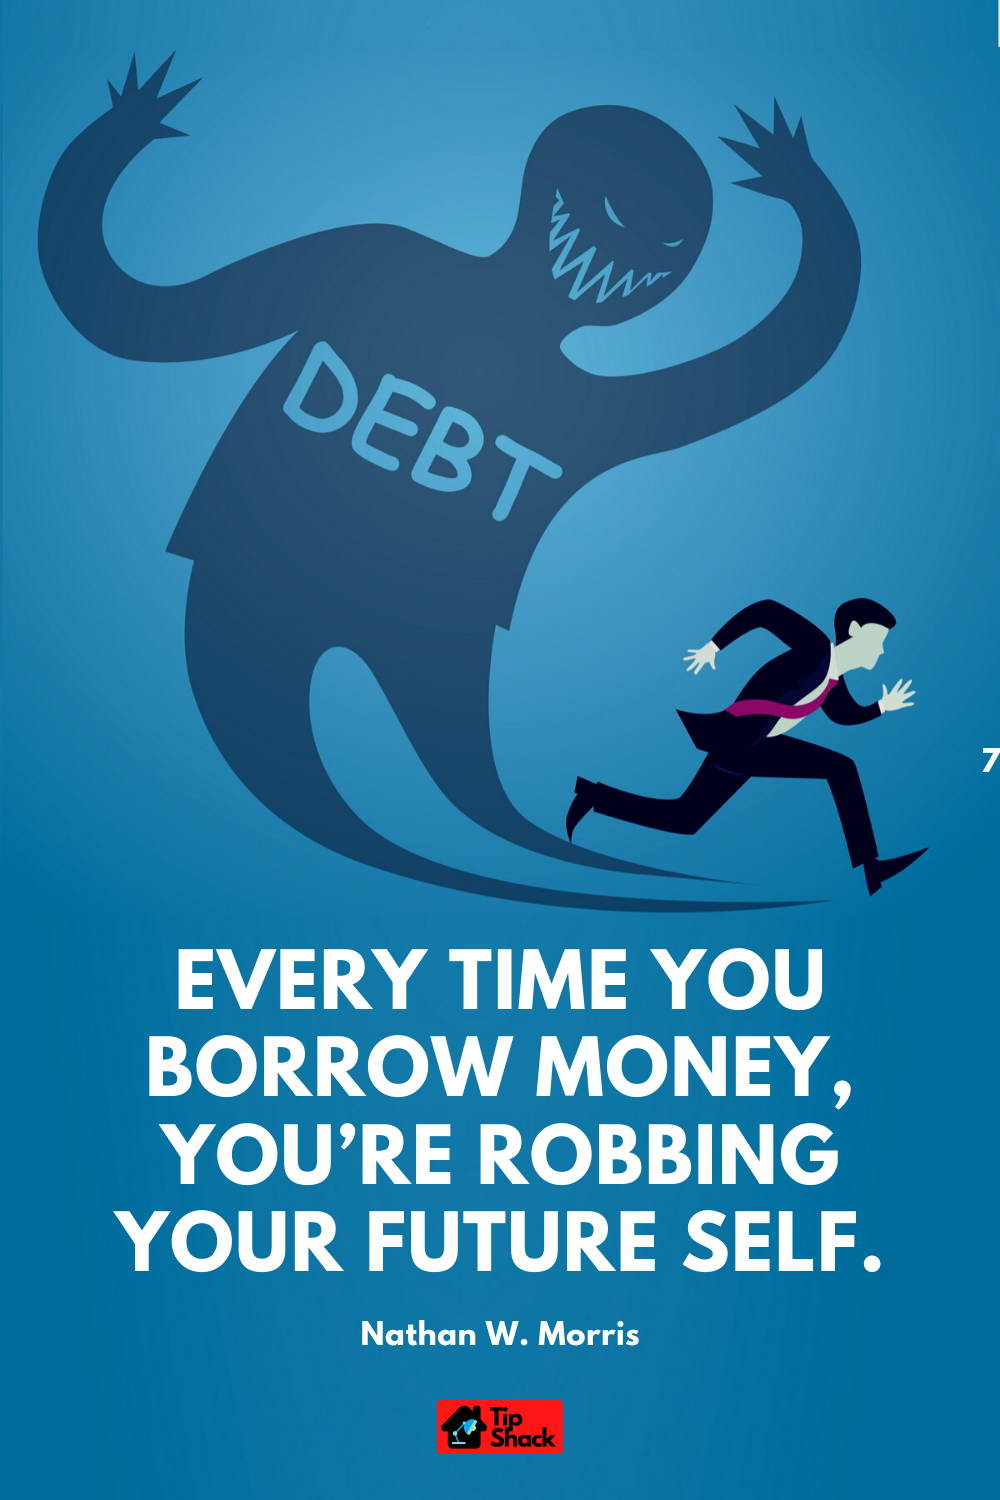 tip-shack.com quotes every time you borrow money you're robbing your future self